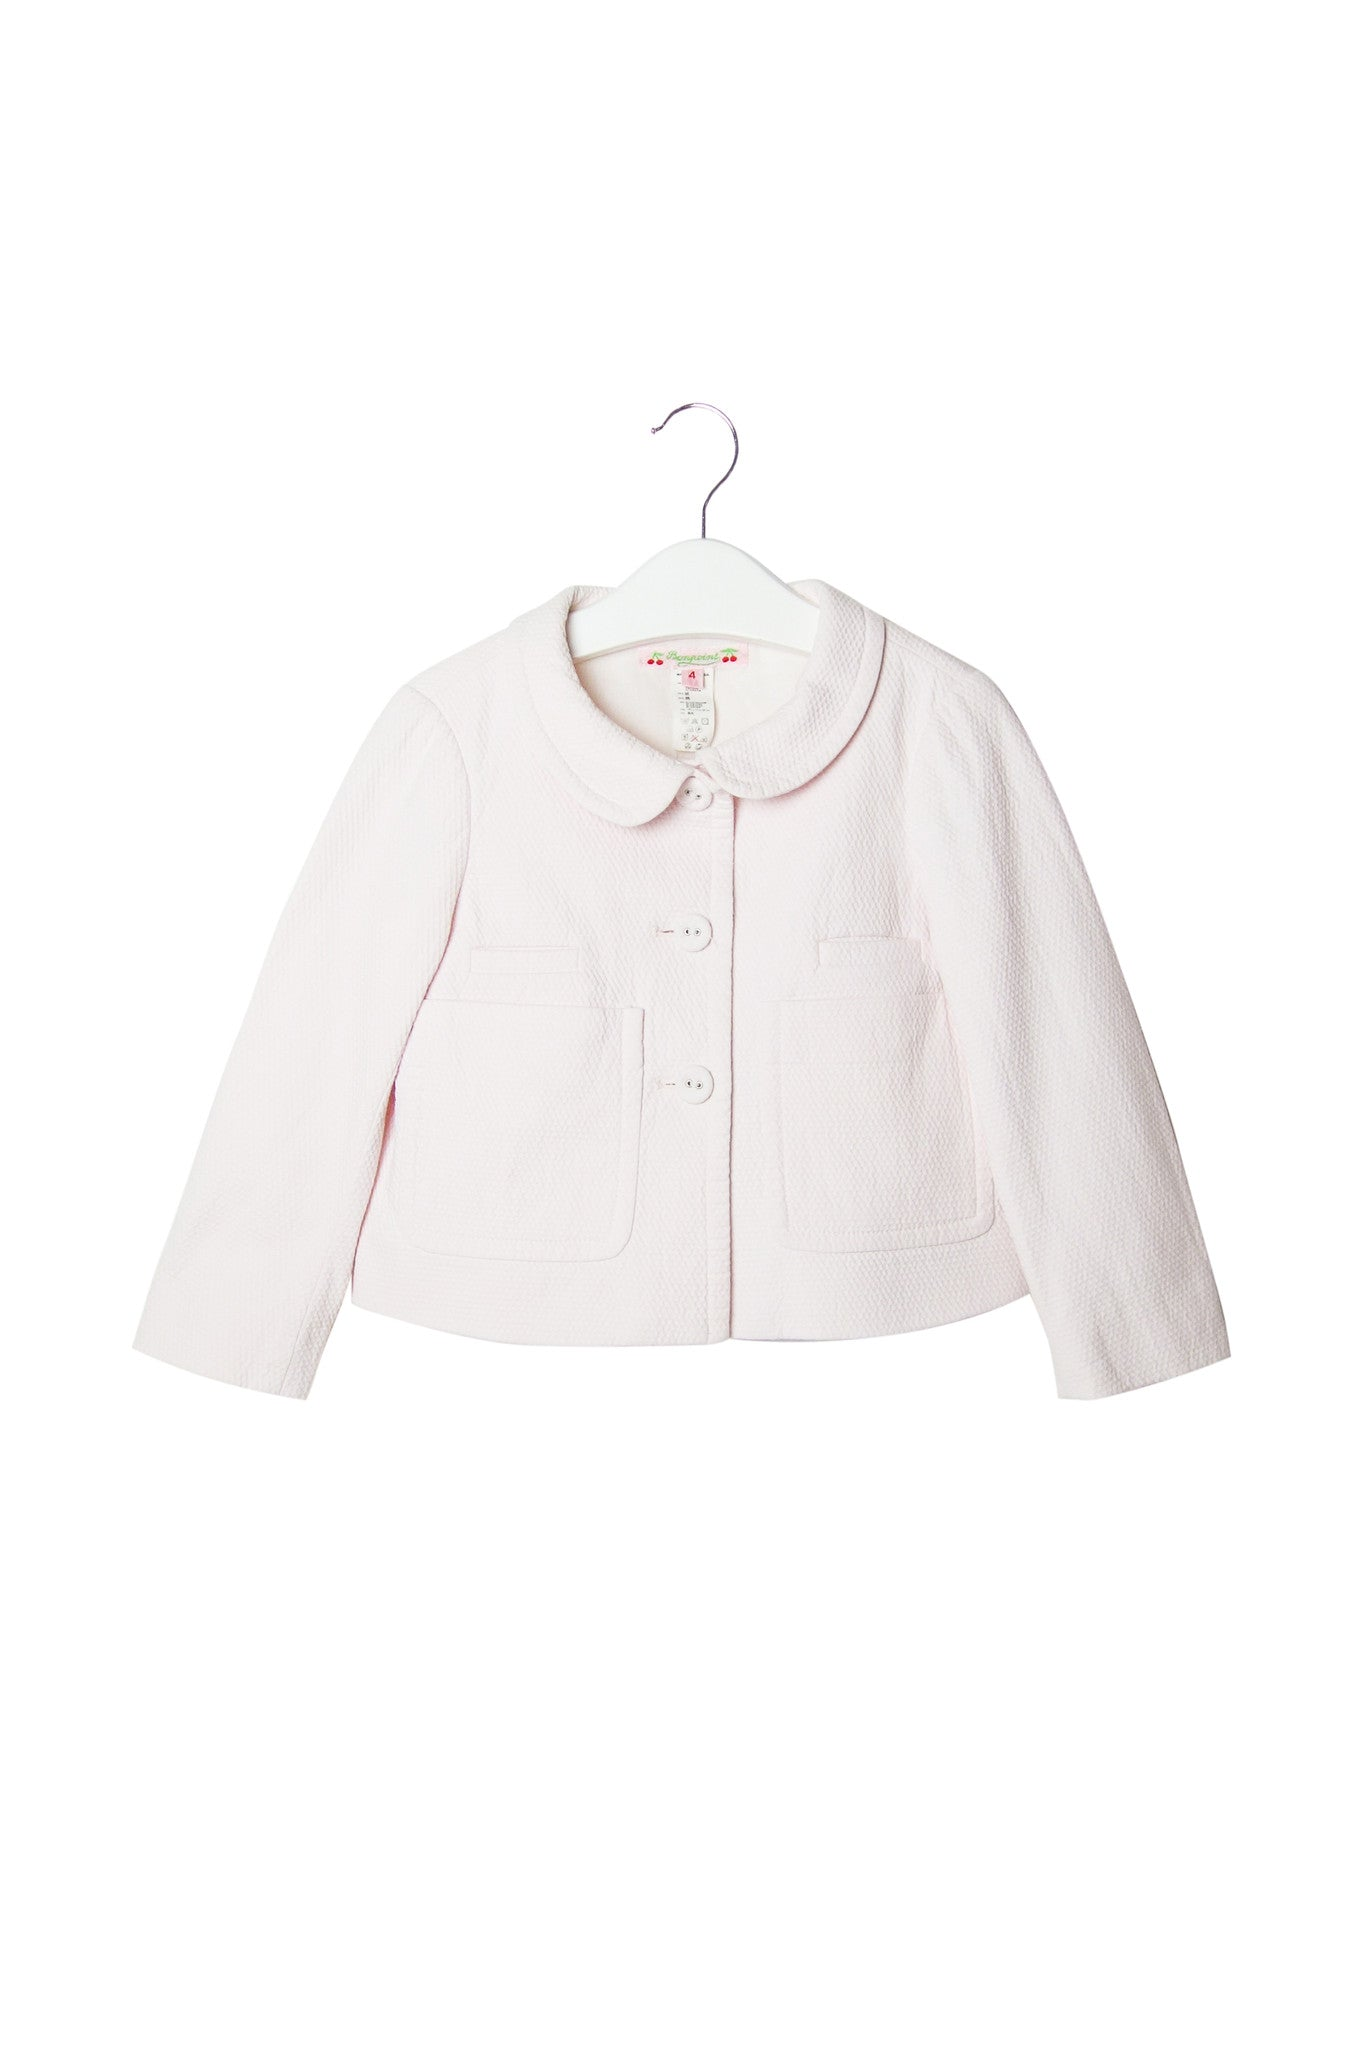 10003363 Bonpoint Kids~Jacket 4T at Retykle